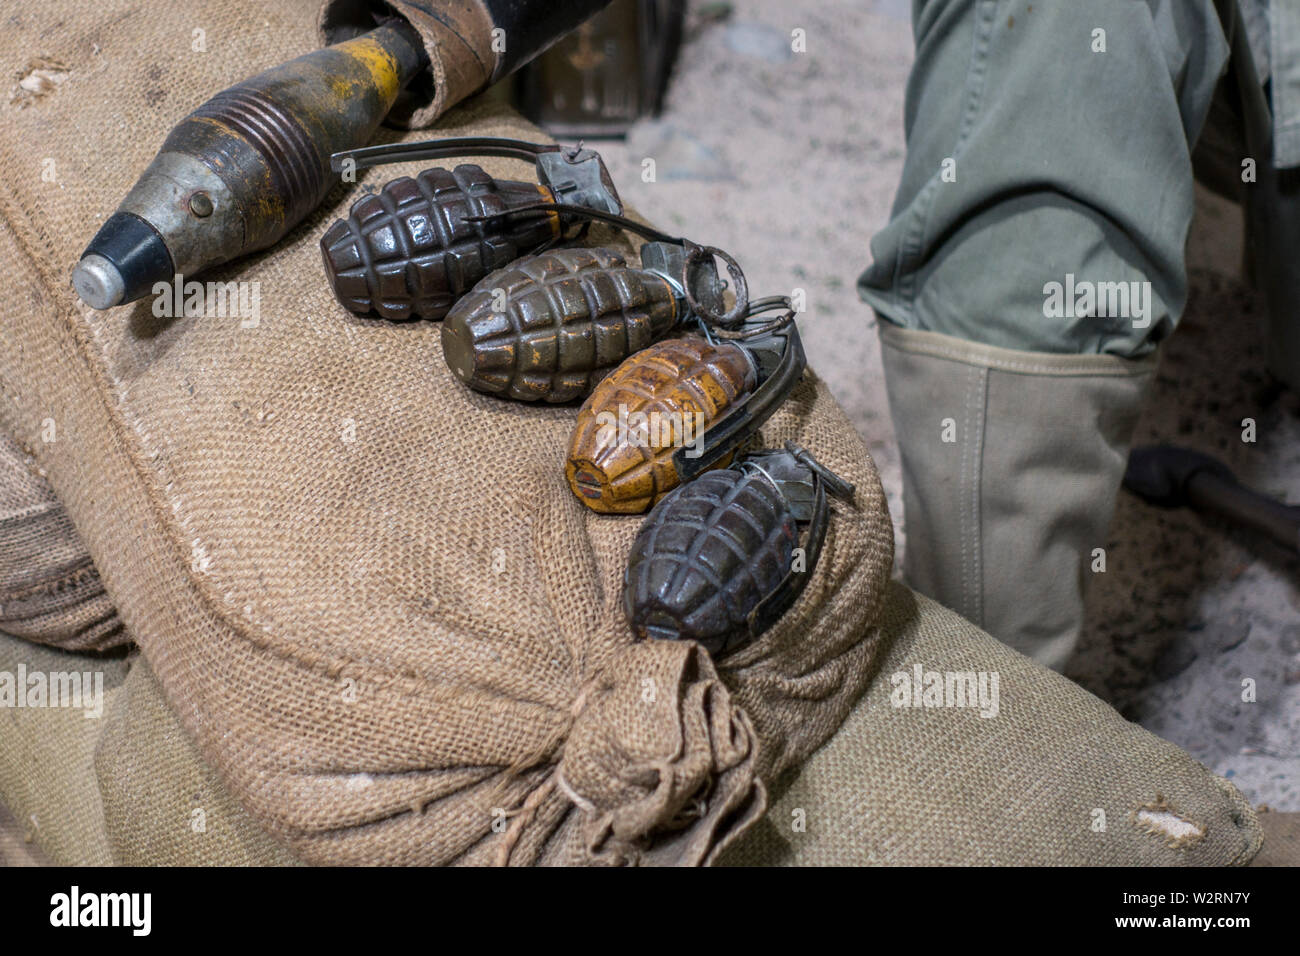 WW2 Mk 2  / Mk II grenades, fragmentation type anti-personnel hand grenade used by the American army during the Second World War - Stock Image